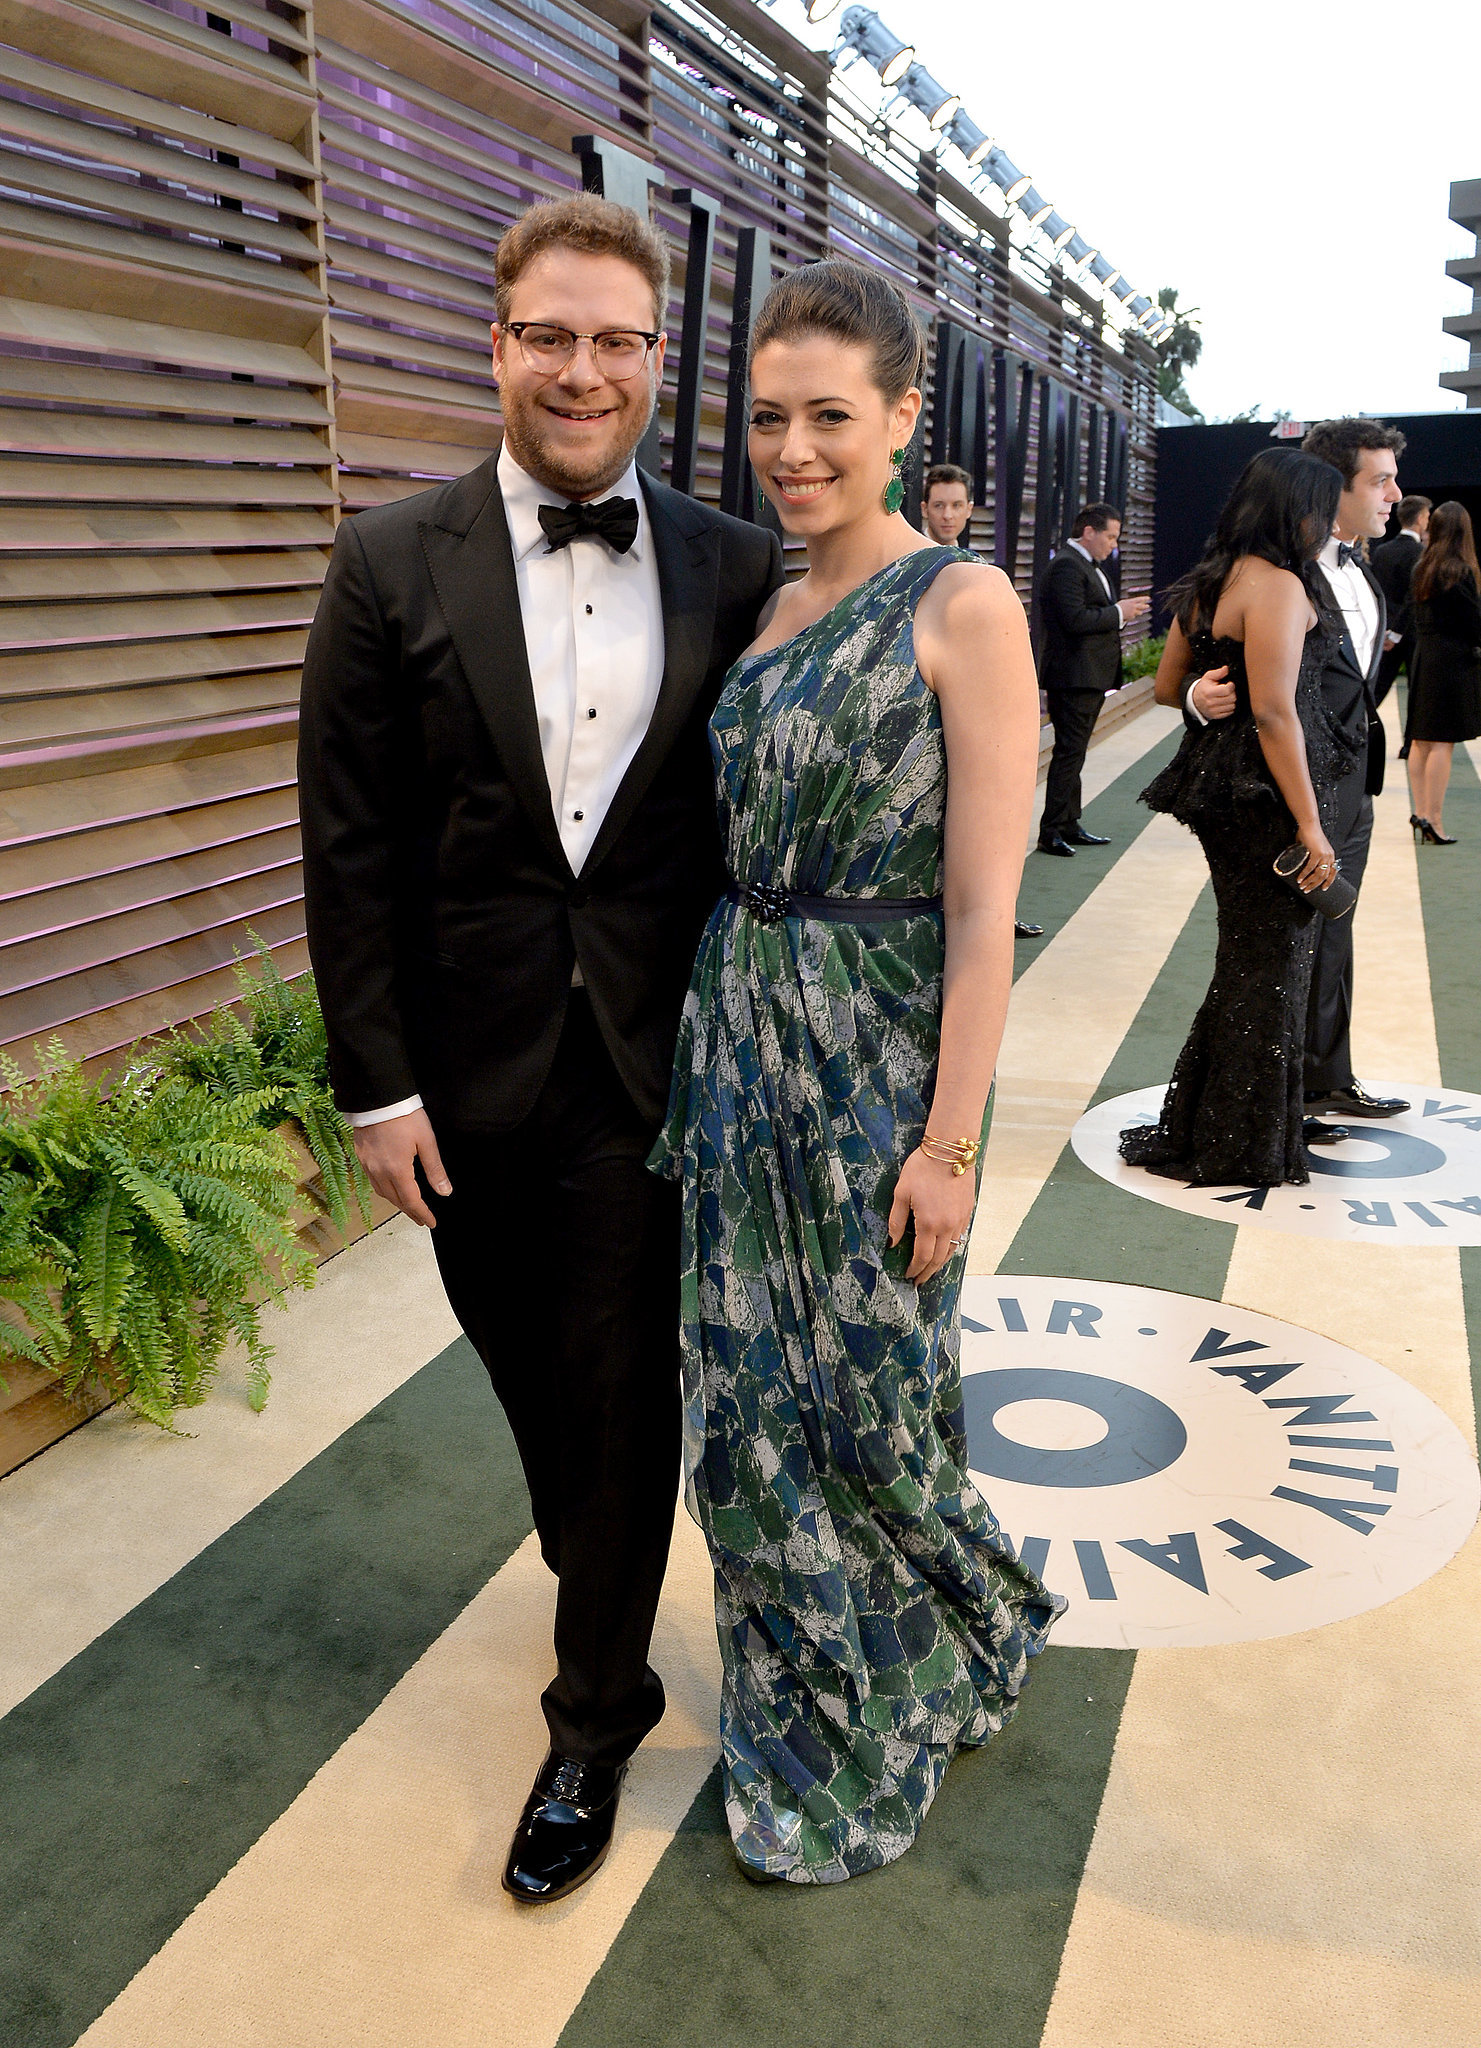 Seth Rogen showed up with his wife, Lauren Miller.